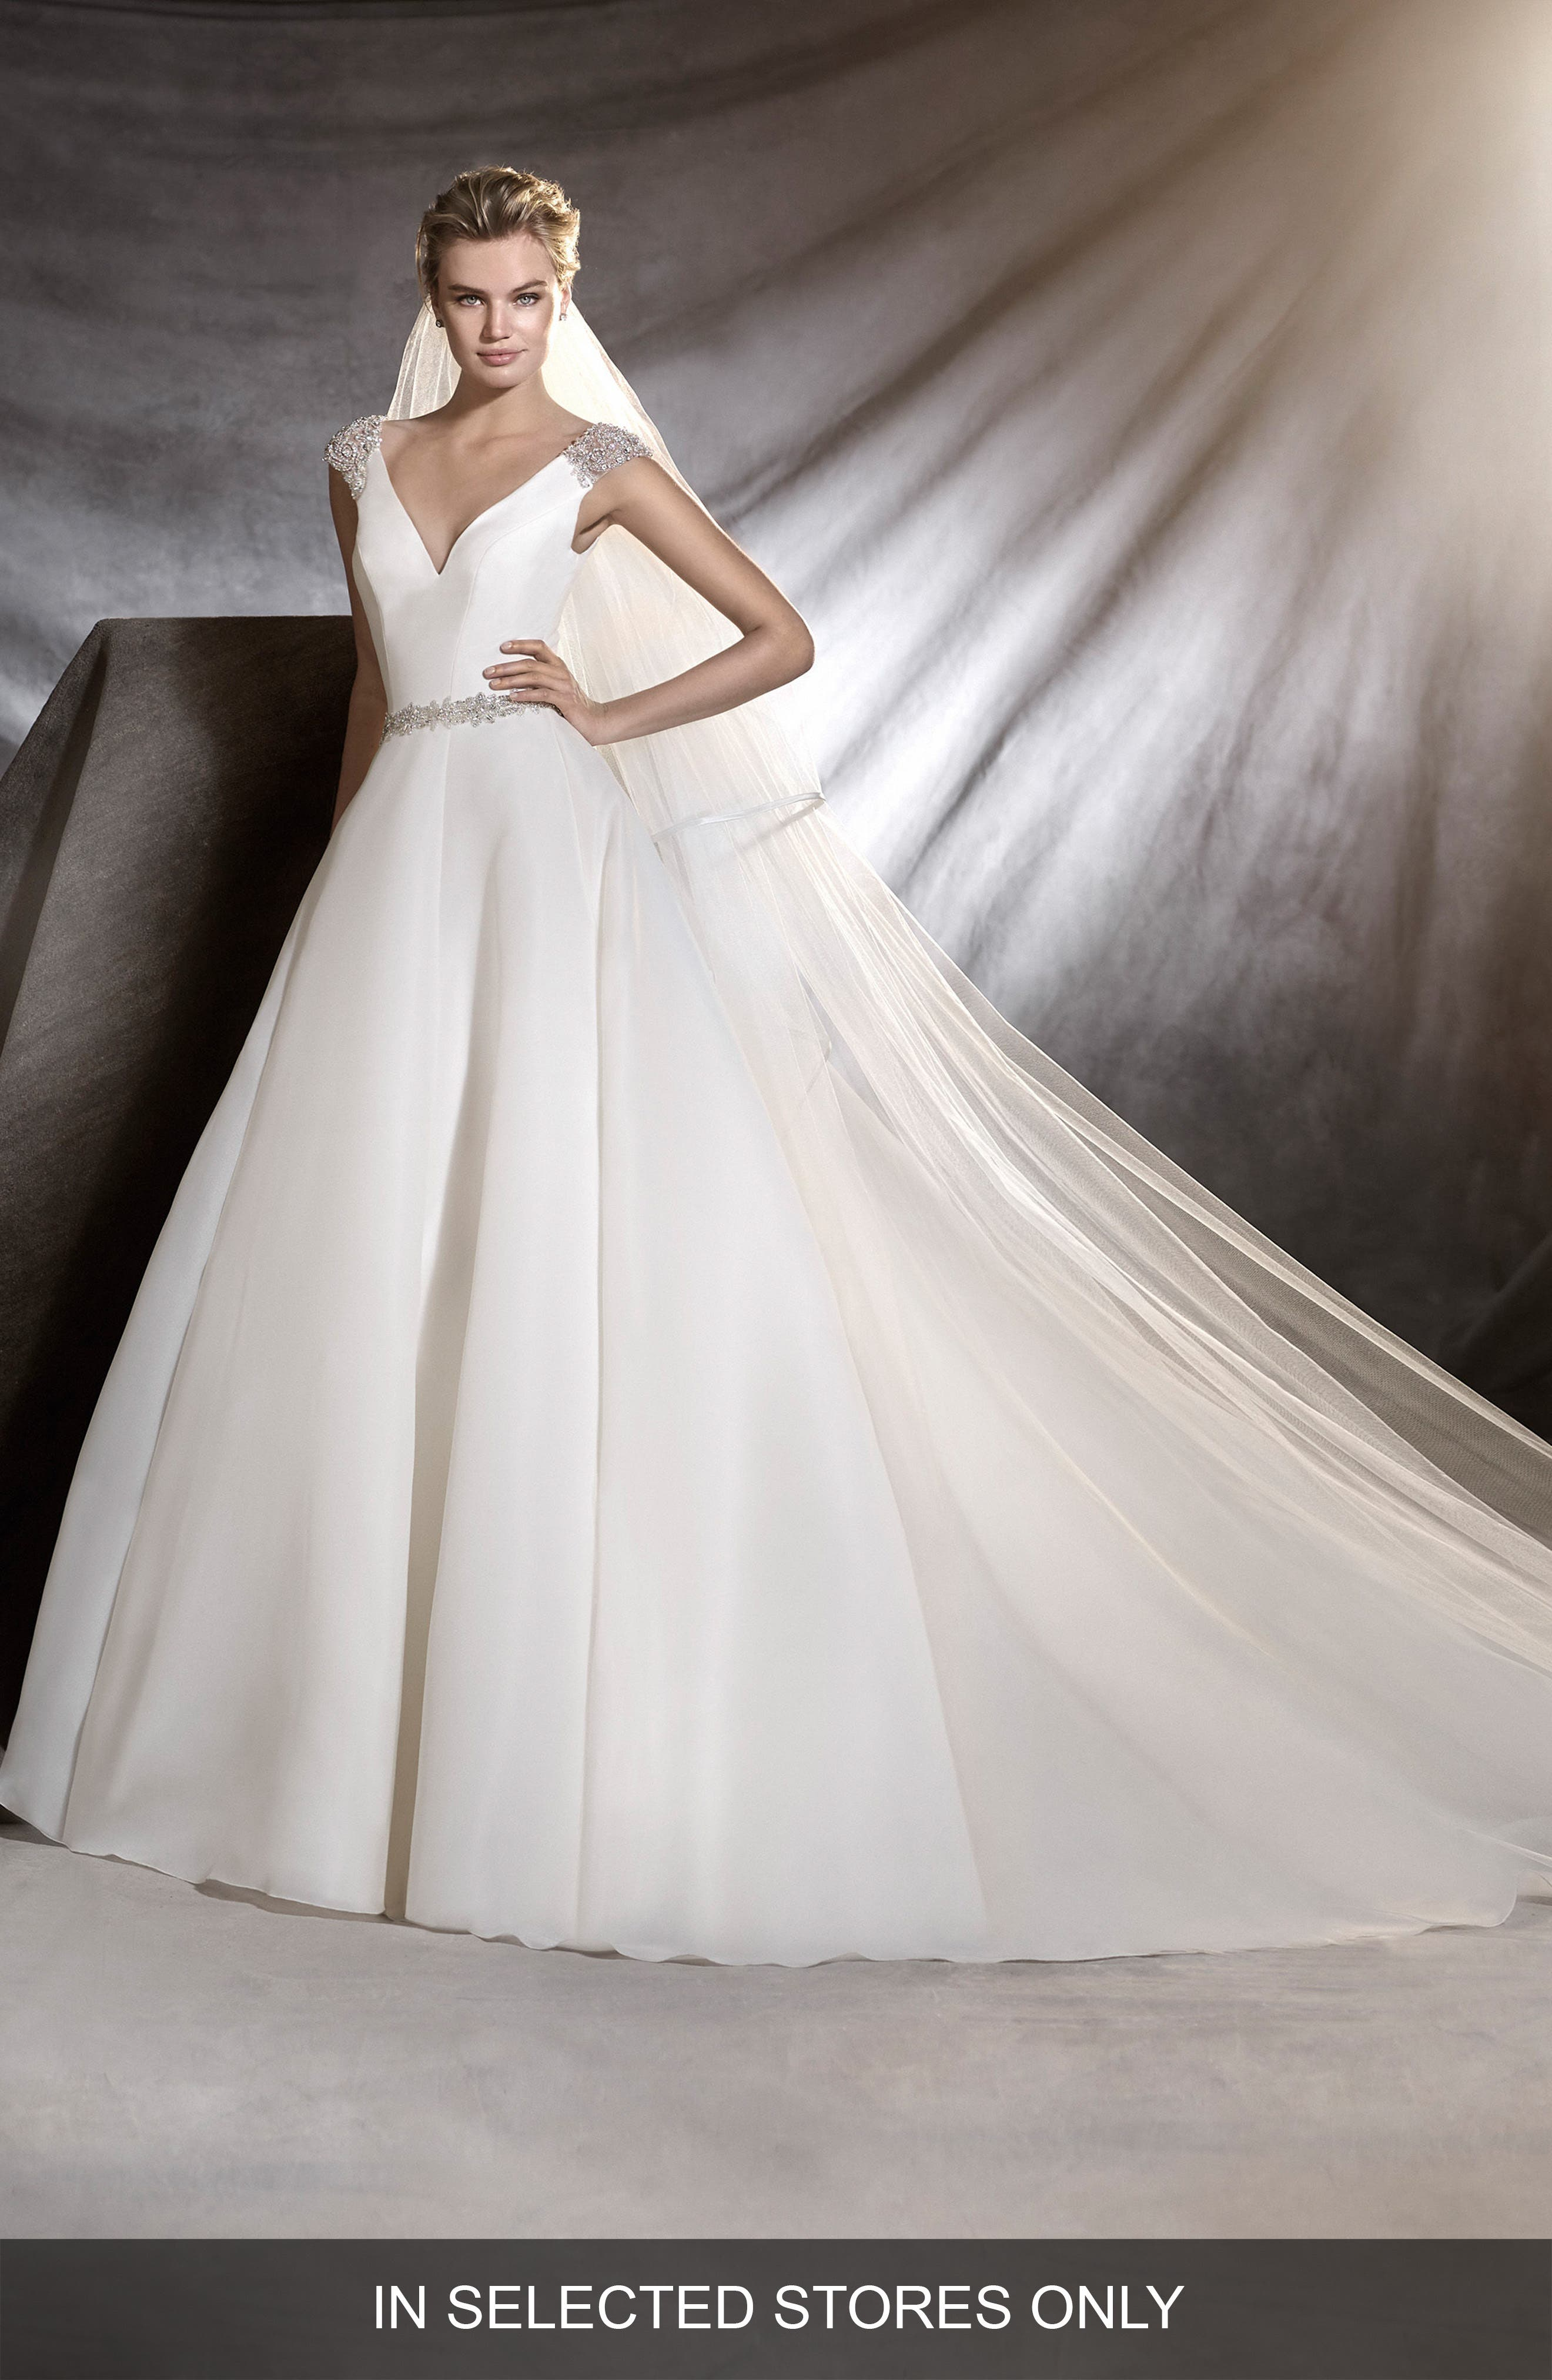 Ovidia Beaded Cap Sleeve Organza Ballgown,                         Main,                         color, 901